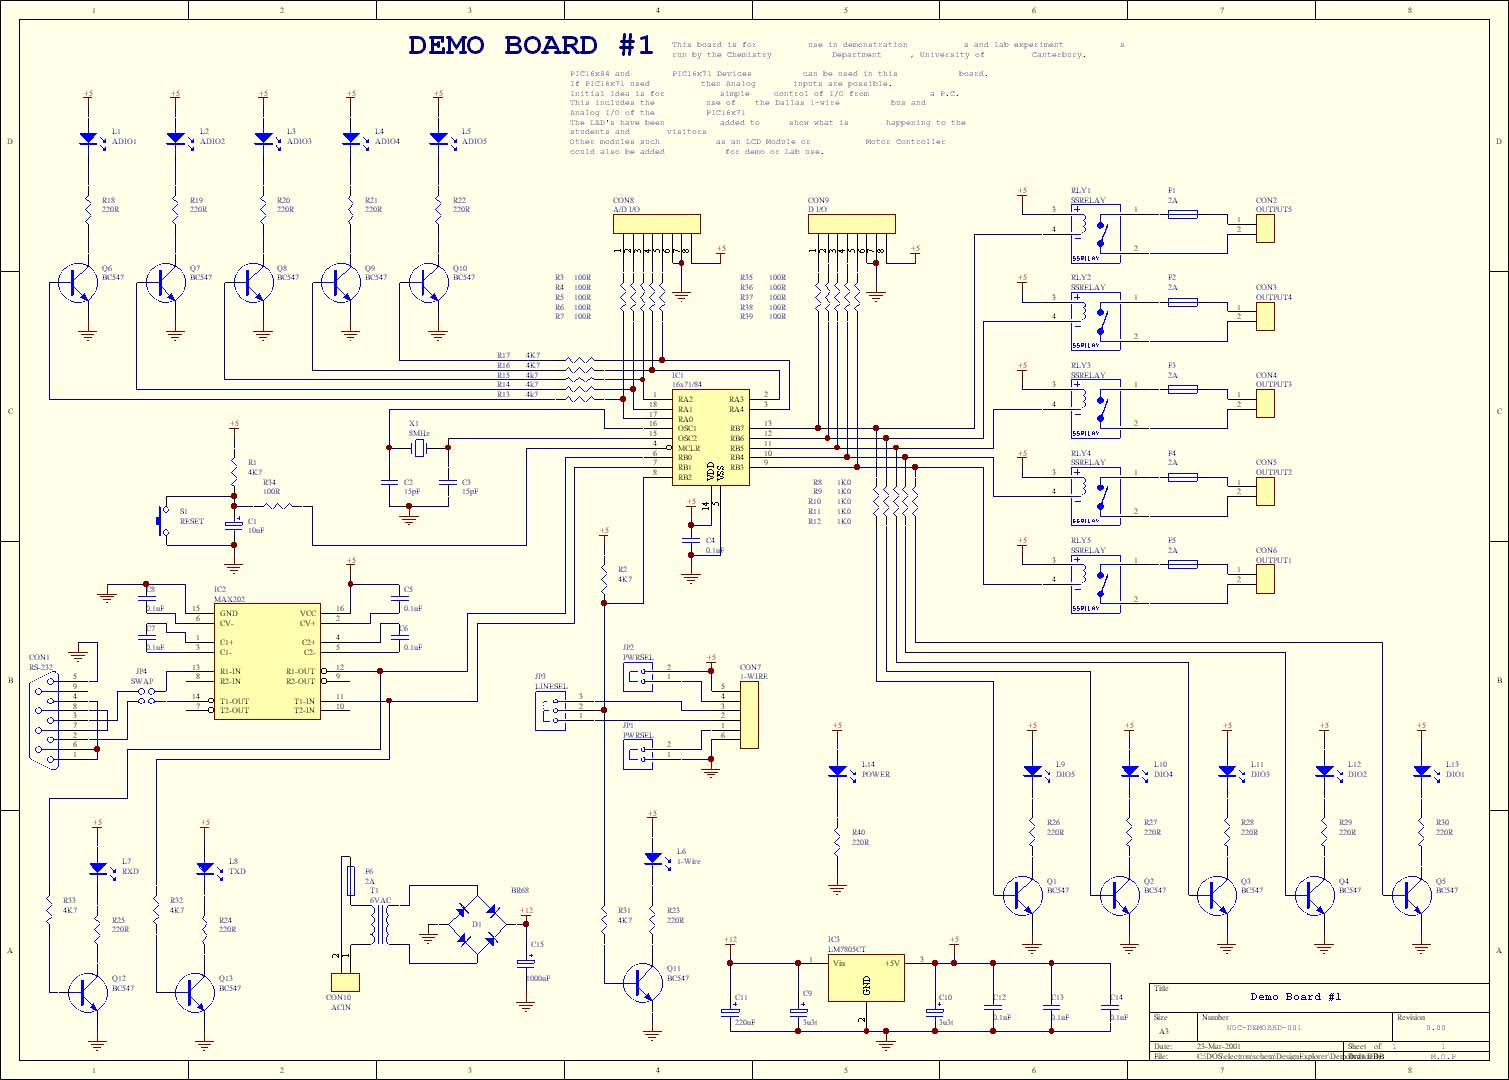 Microcontroller Based Electronic Circuit Diagrams Dice Wiring Pic Demo Board